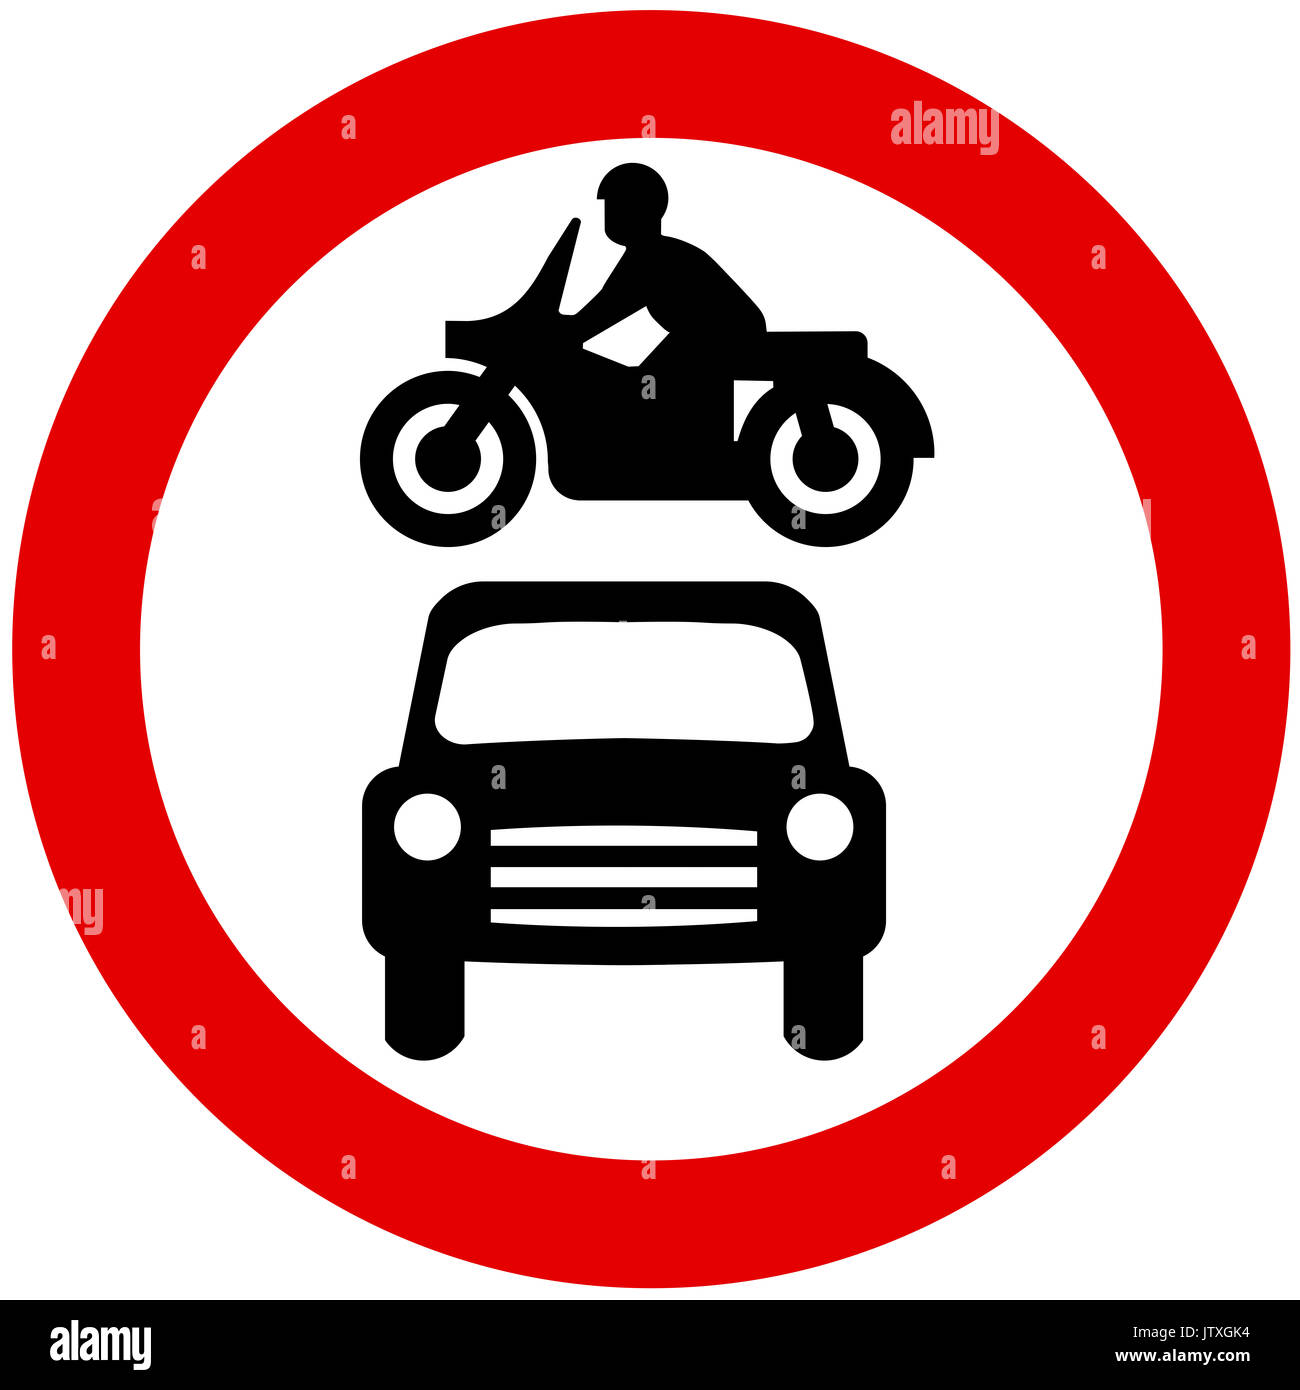 No entry to motor vehicles road sign on white background - Stock Image